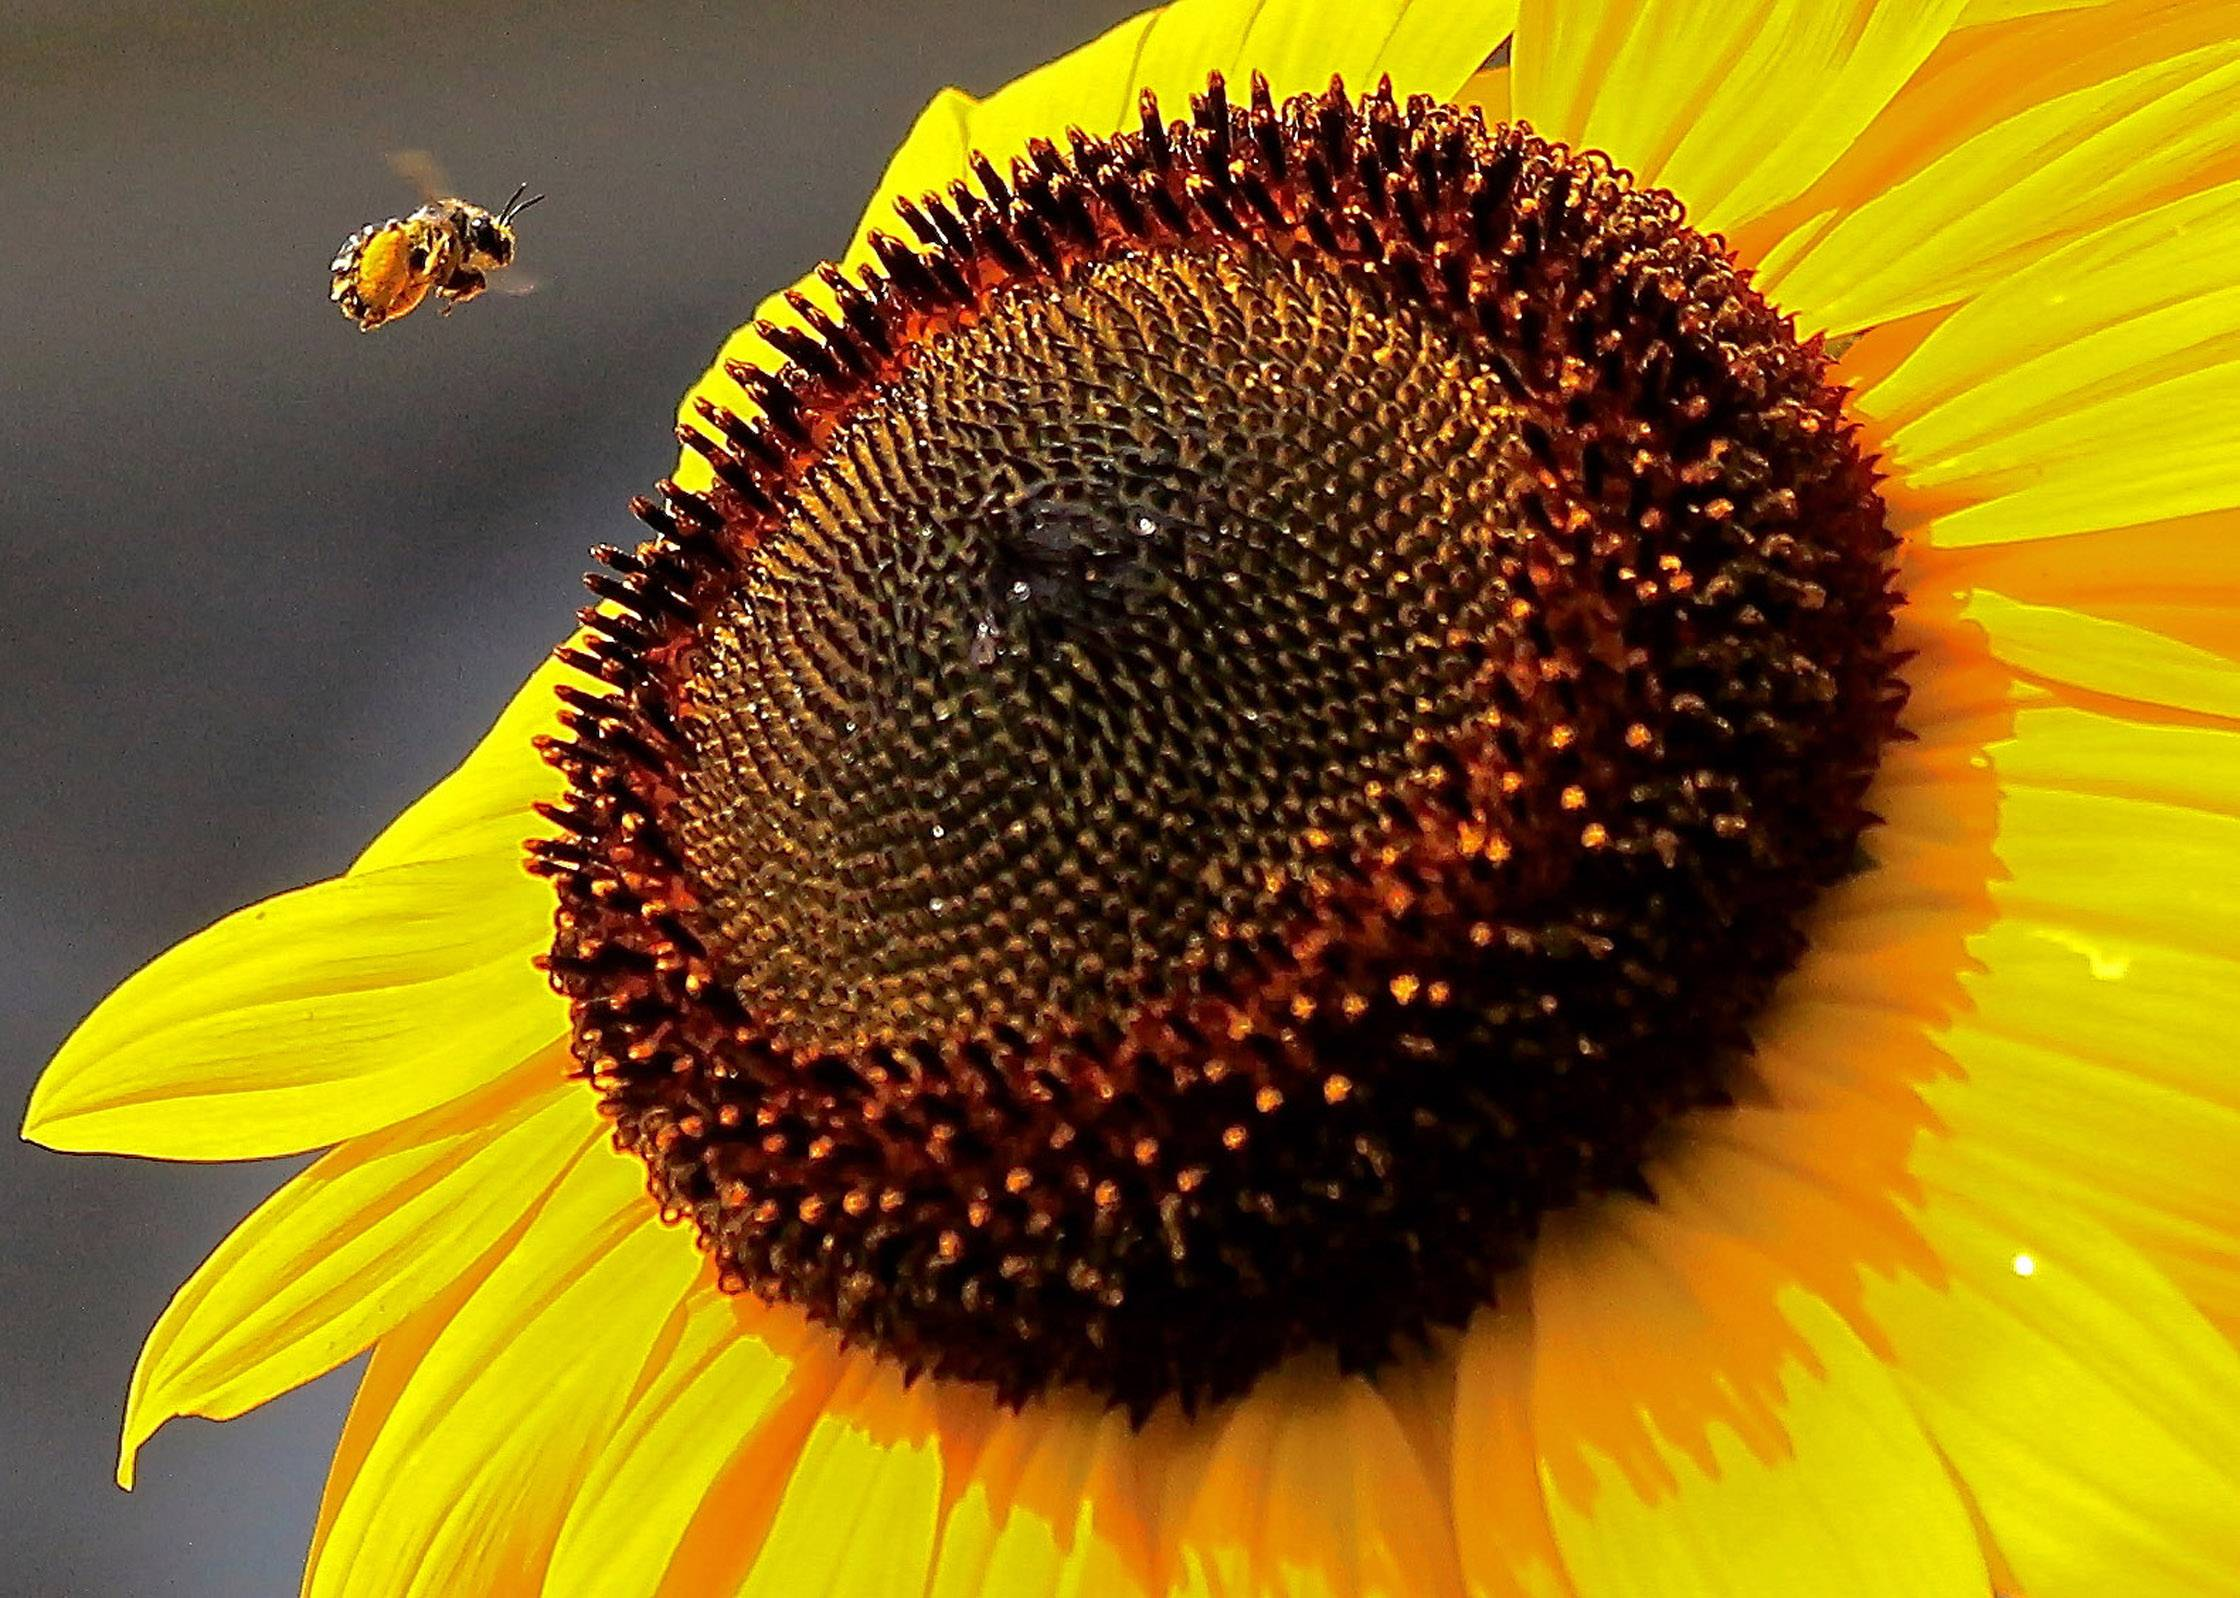 A honey bee heads for a sunflower in an Arlington Heights backyard.